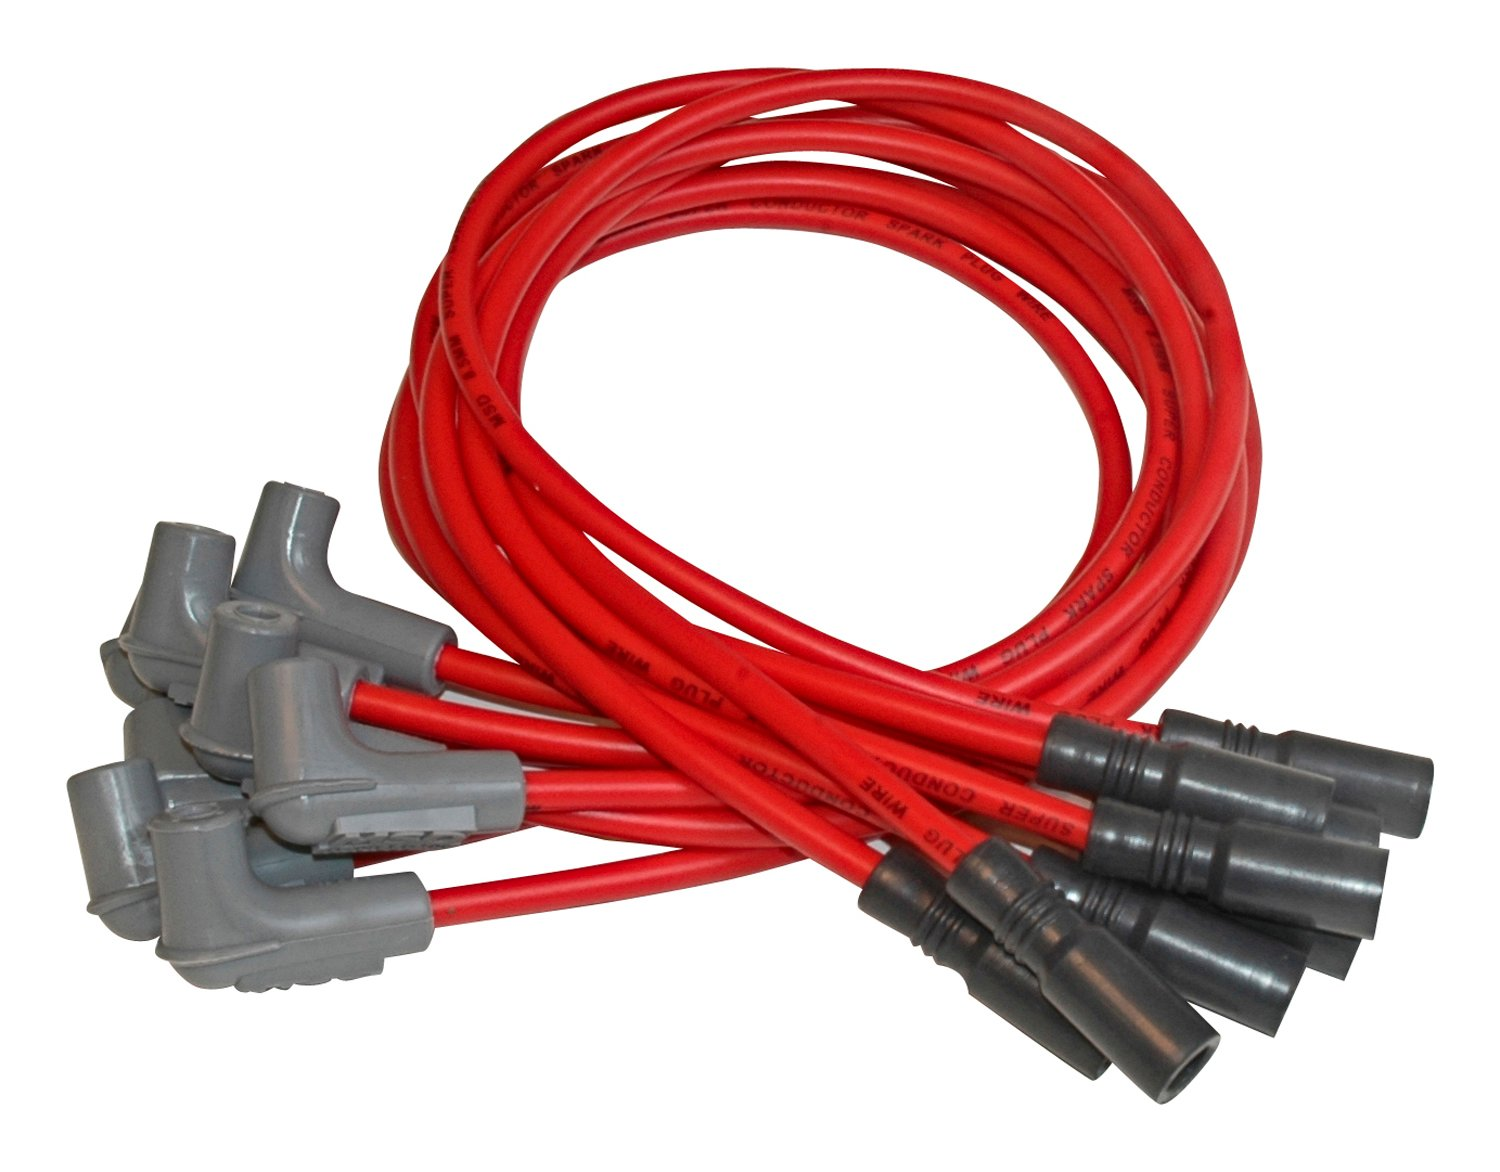 hight resolution of msd 32149 super conductor spark plug wire set lt1 camaro 93 96 lt1 optispark lt1 msd wiring